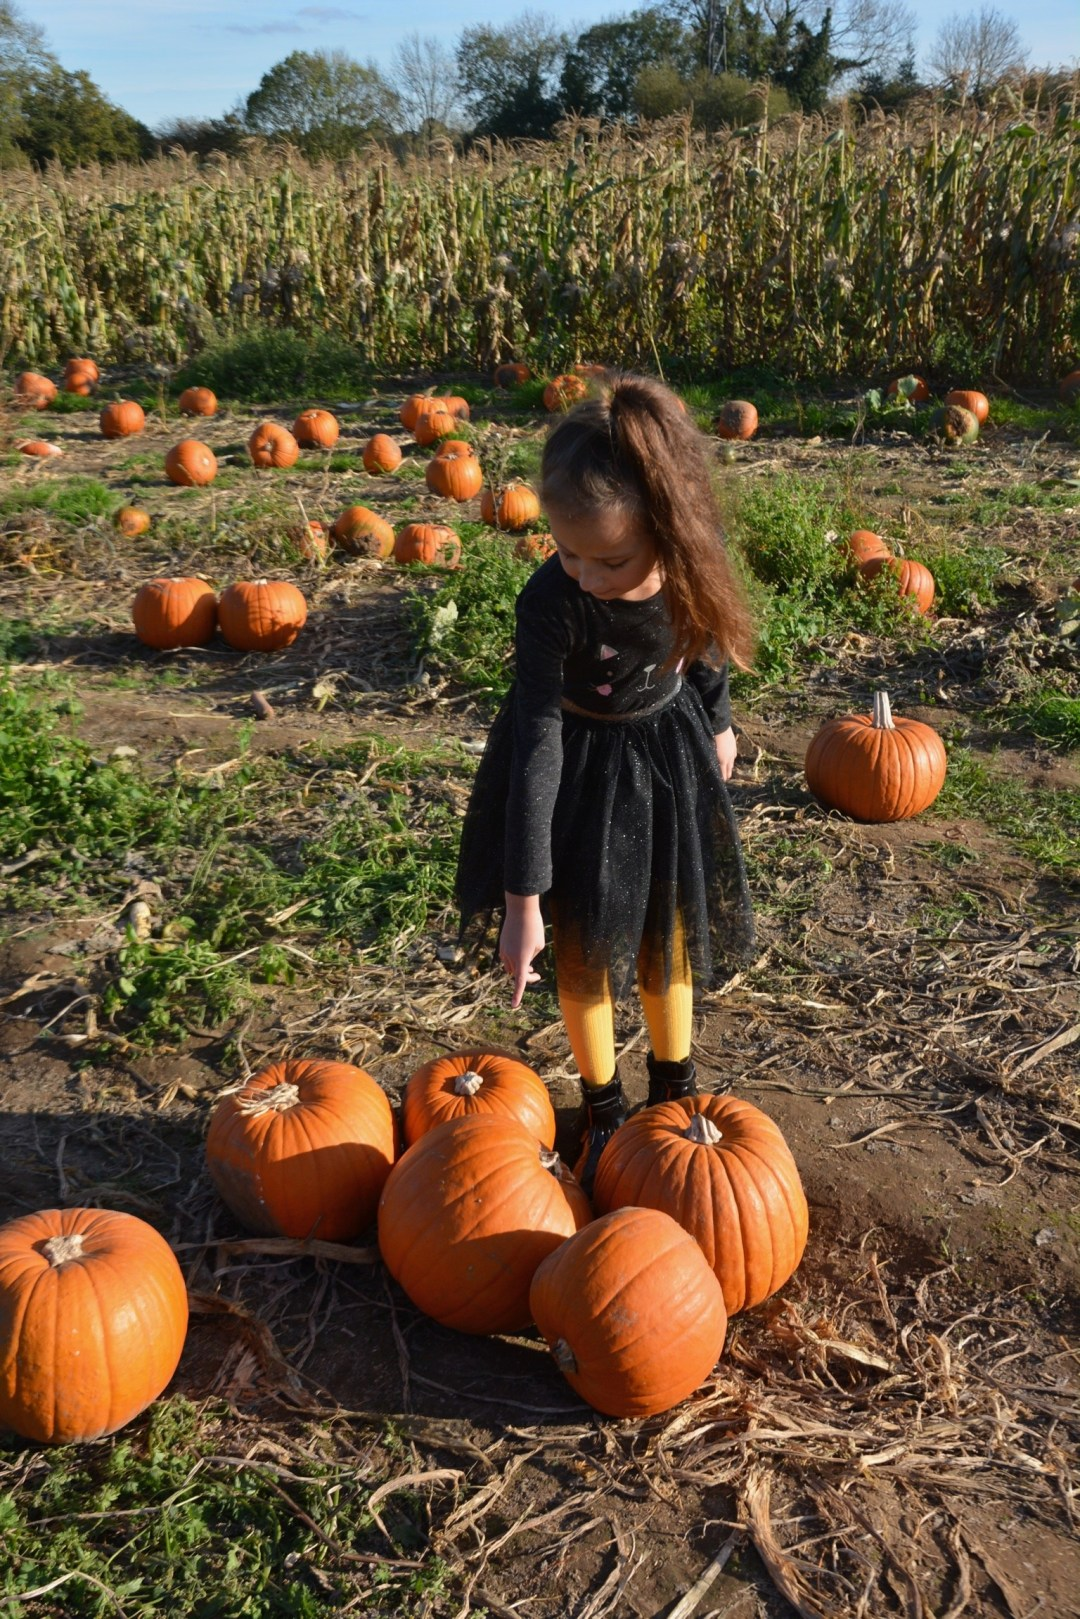 Autumn is Here! - 10 Things to do in October